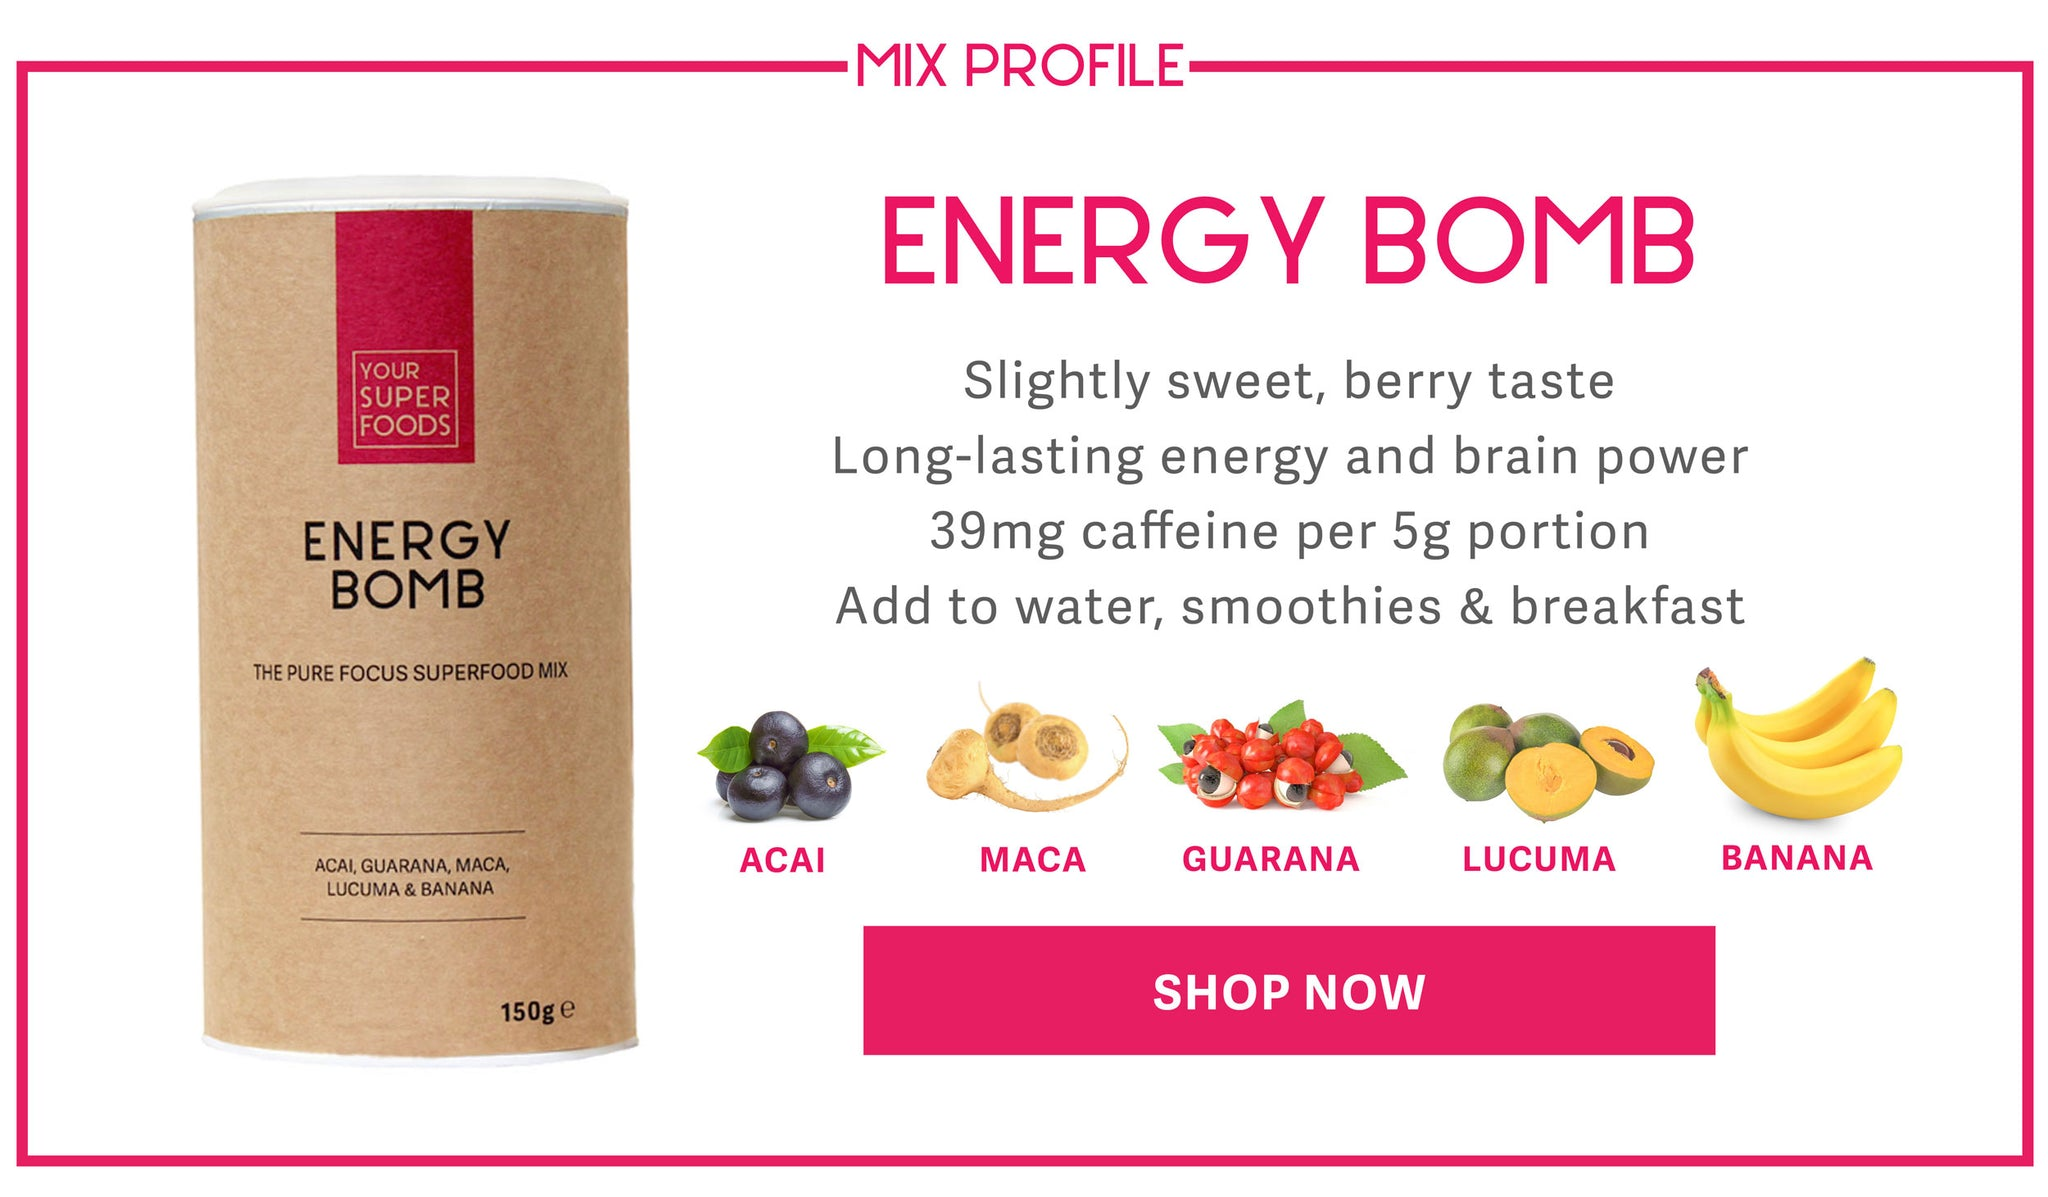 Energy Bomb Mix Profile